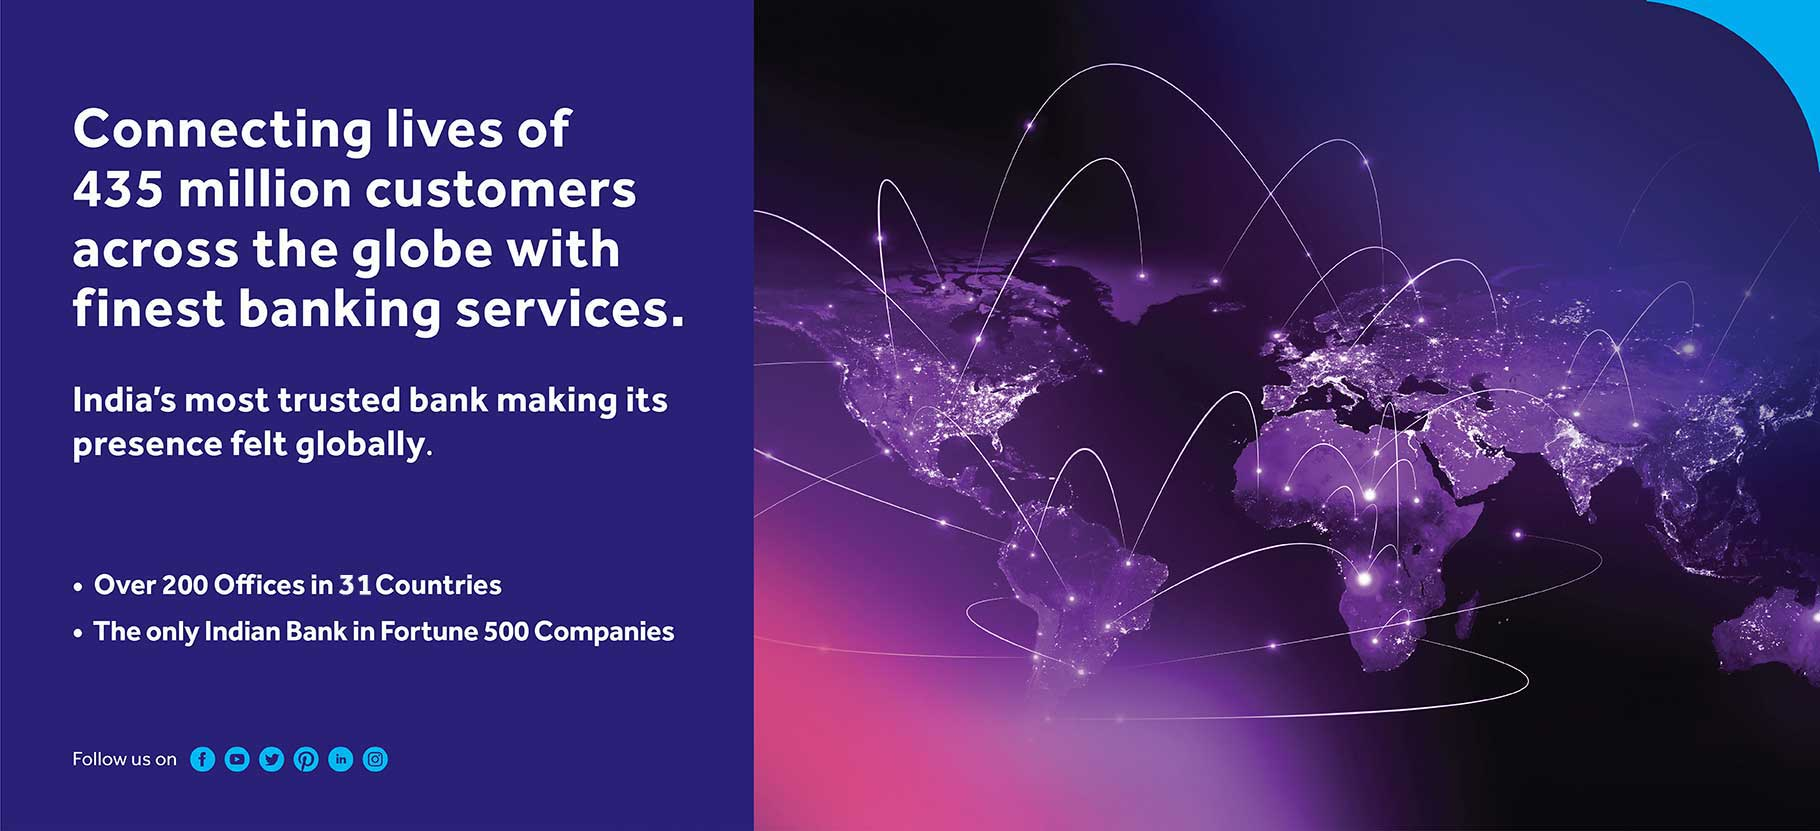 Connecting lives of 435 million customers across the globe with finest banking services